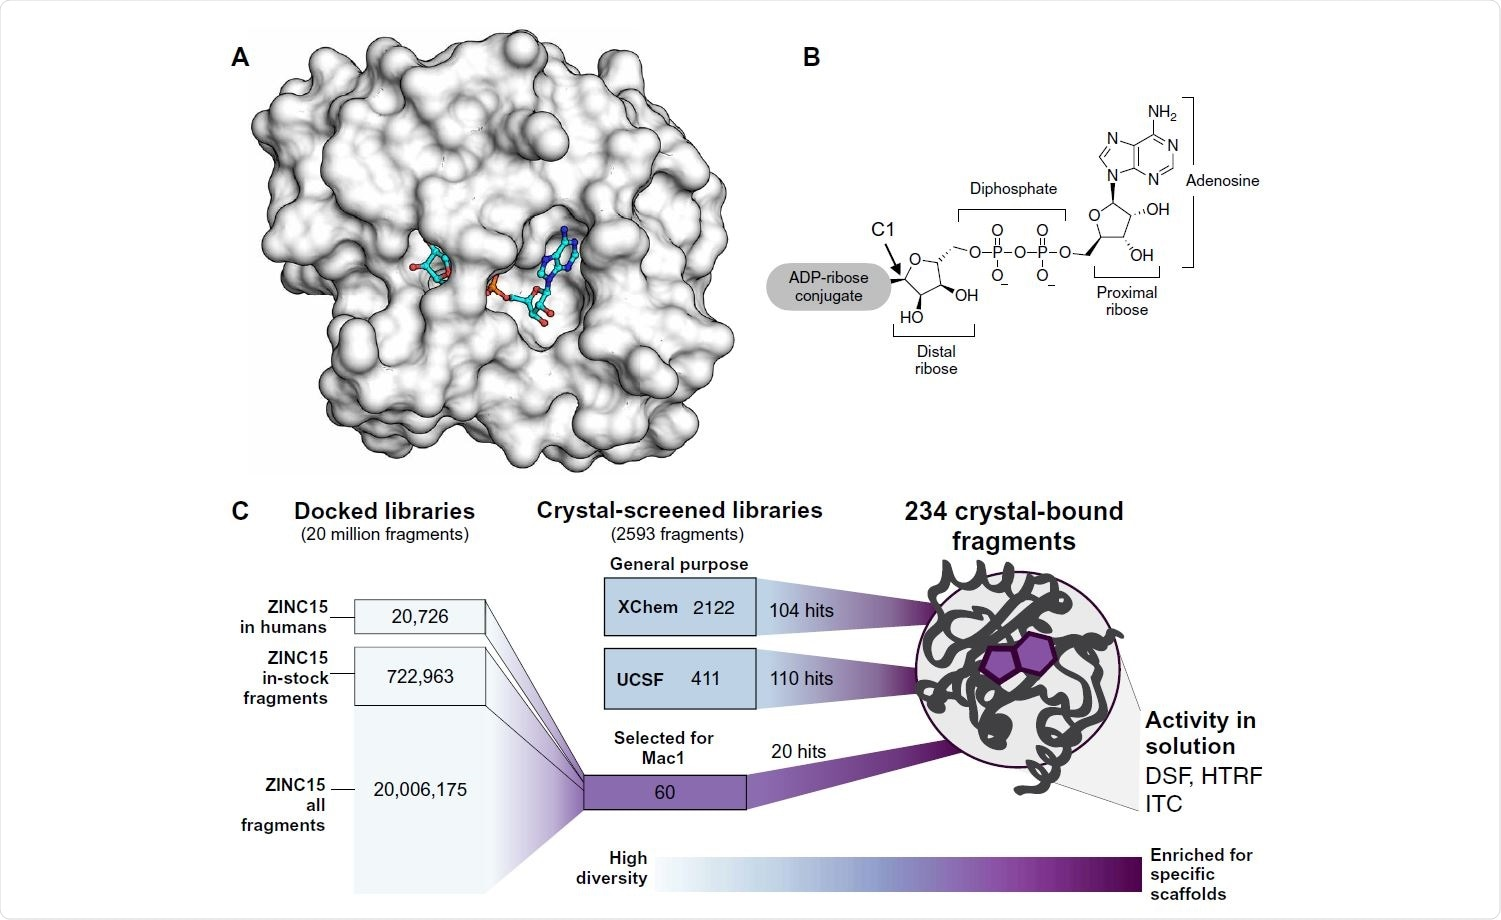 Overview of the fragment discovery approach for SARS-CoV-2 Nsp3 Mac1 presented in this study. (A) Surface representation of Nsp3 Mac1 with ADPr bound (cyan) in a deep and open binding cleft. (B) Nsp3 Mac1 has (ADP-ribosyl)hydrolase activity, which removes ADP-ribosylation modifications attached to host and pathogen targets. ADPr is conjugated through C1 of the distal ribose. (C) Summary of the fragment discovery campaign presented in this work. Three fragment libraries were screened by crystallography: two general-purpose [XChem and University of California San Francisco (UCSF)] and a third bespoke library of 60 compounds, curated for Mac1 by molecular docking of more than 20 million fragments. Crystallographic studies identified 214 unique fragments binding to Mac1, while the molecular docking effort yielded 20 crystallographically confirmed hits. Several crystallographic and docking fragments were validated by isothermal titration calorimetry (ITC), differential scanning fluorimetry (DSF), and a HTRF-based ADPr-peptide displacement assay.